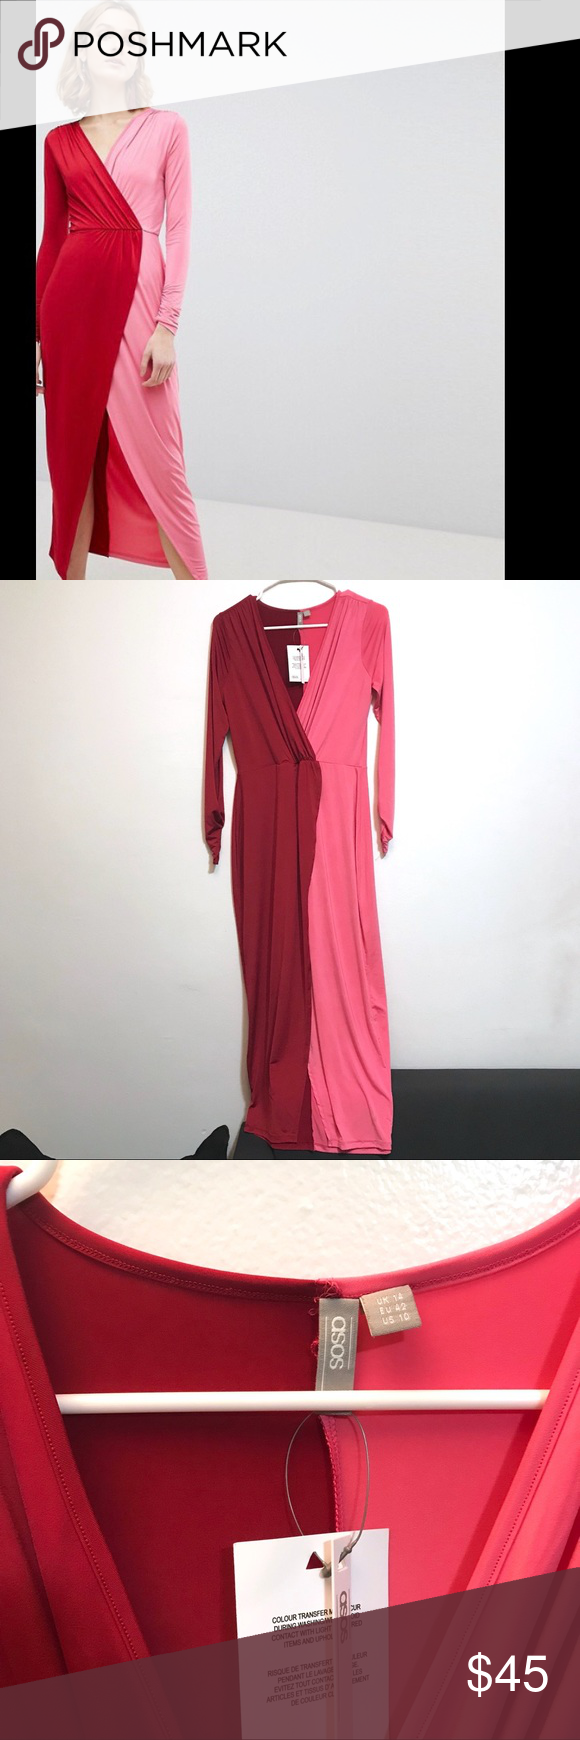 """5bd79ee7b88 NWT ASOS Wrap Maxi Dress Red Pink 10 Color Block New With Tags. Approximate  measurements  Length 54"""""""